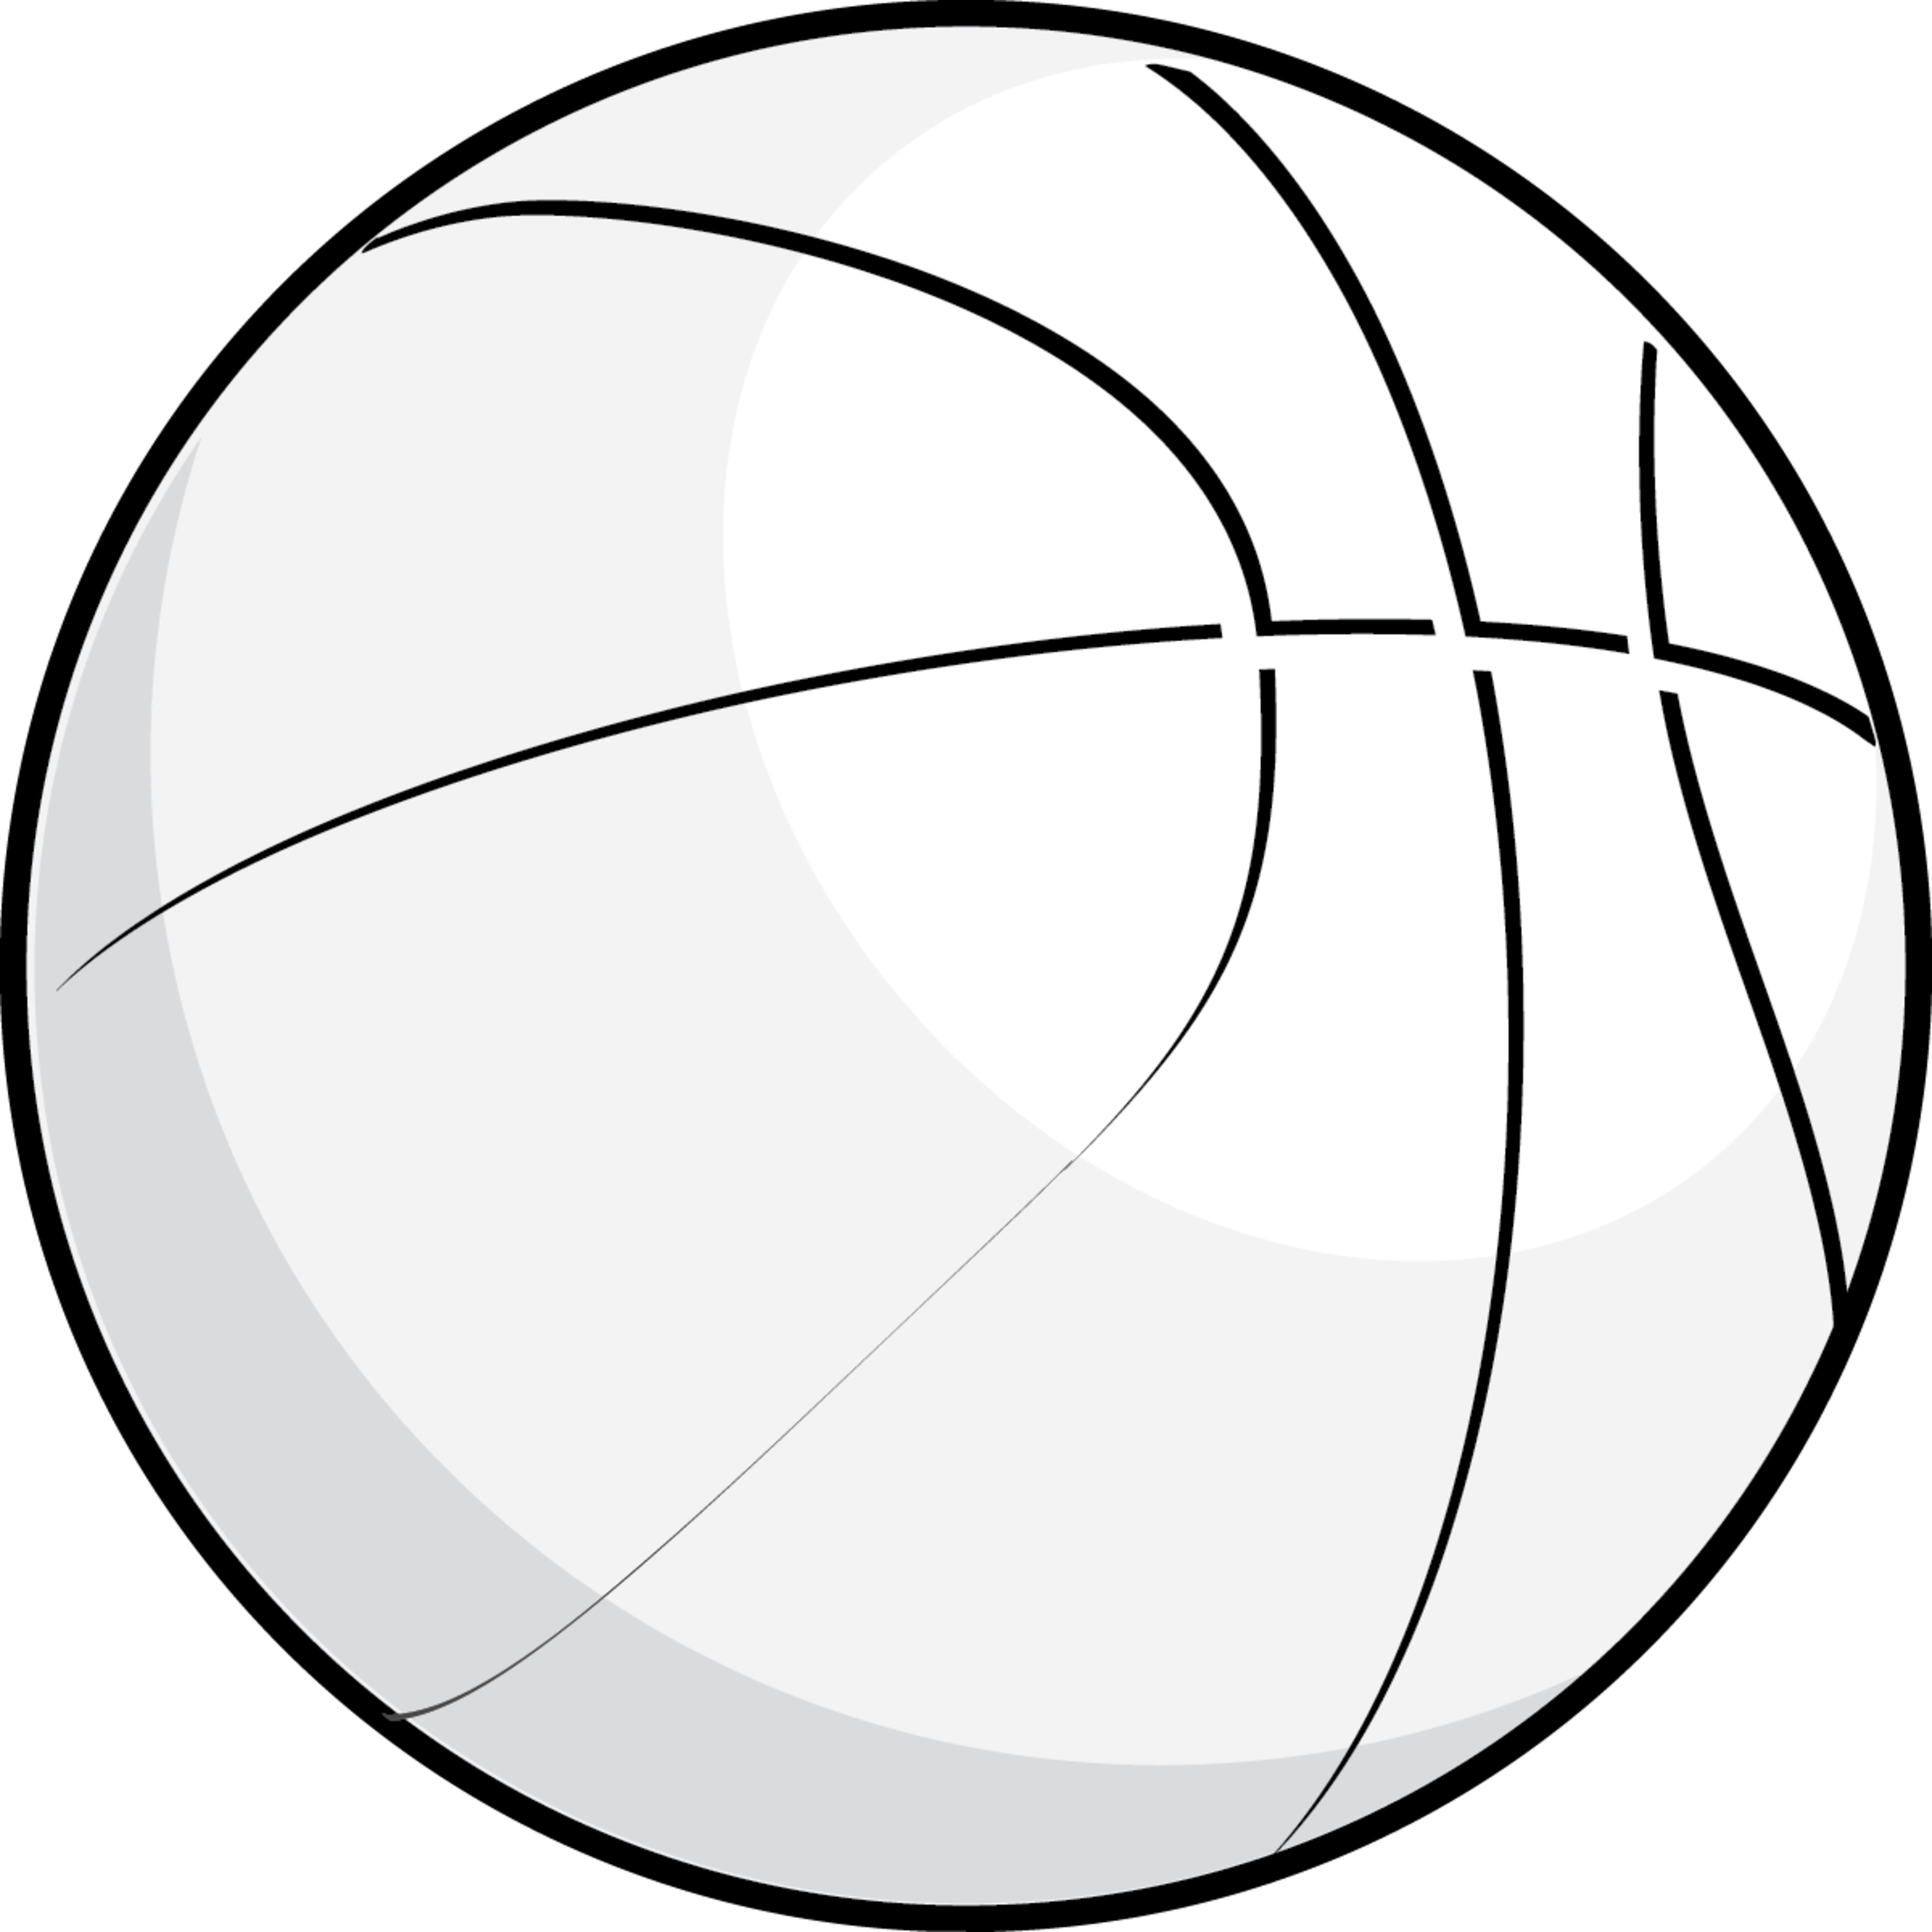 Basketball black and white house clipart black and white 6 - Sphere PNG Black And White